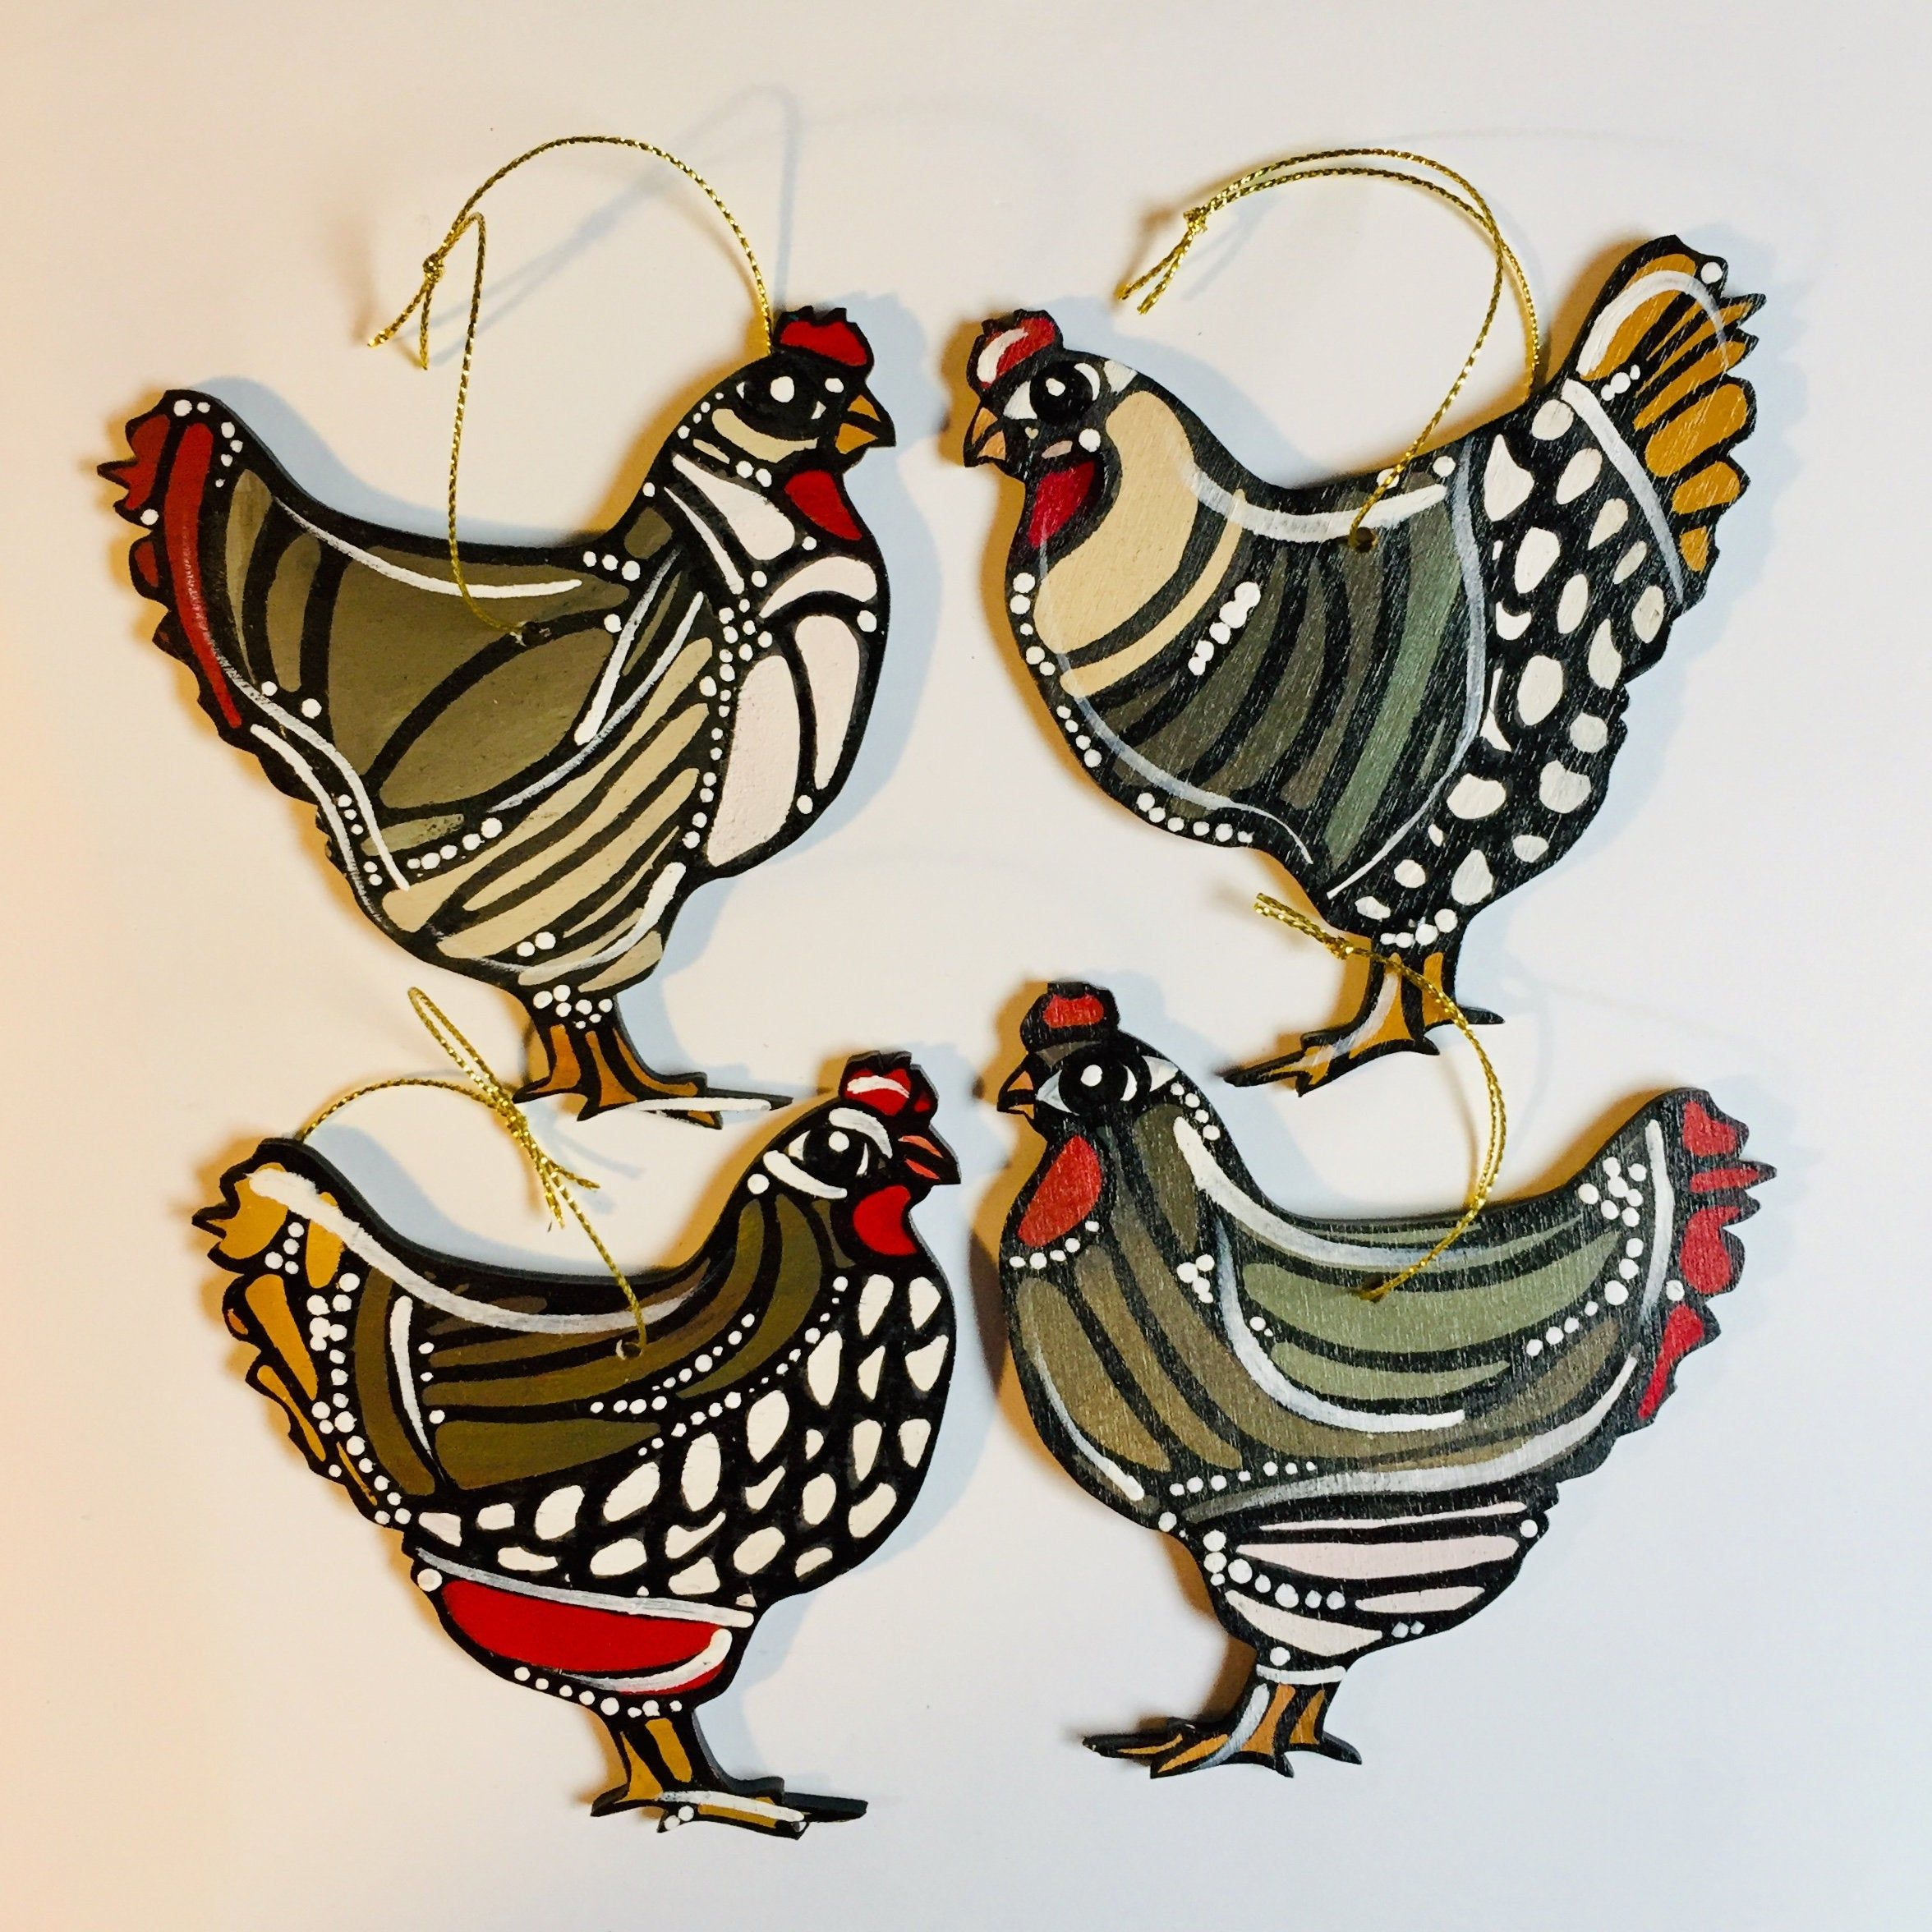 Chicken Ornament Handmade And Hand Painted Hen Hanging Ornament One Of A Kind Poultry Signed Wood Orname Chicken Lover Gifts Colorful Artwork Cow Ornaments